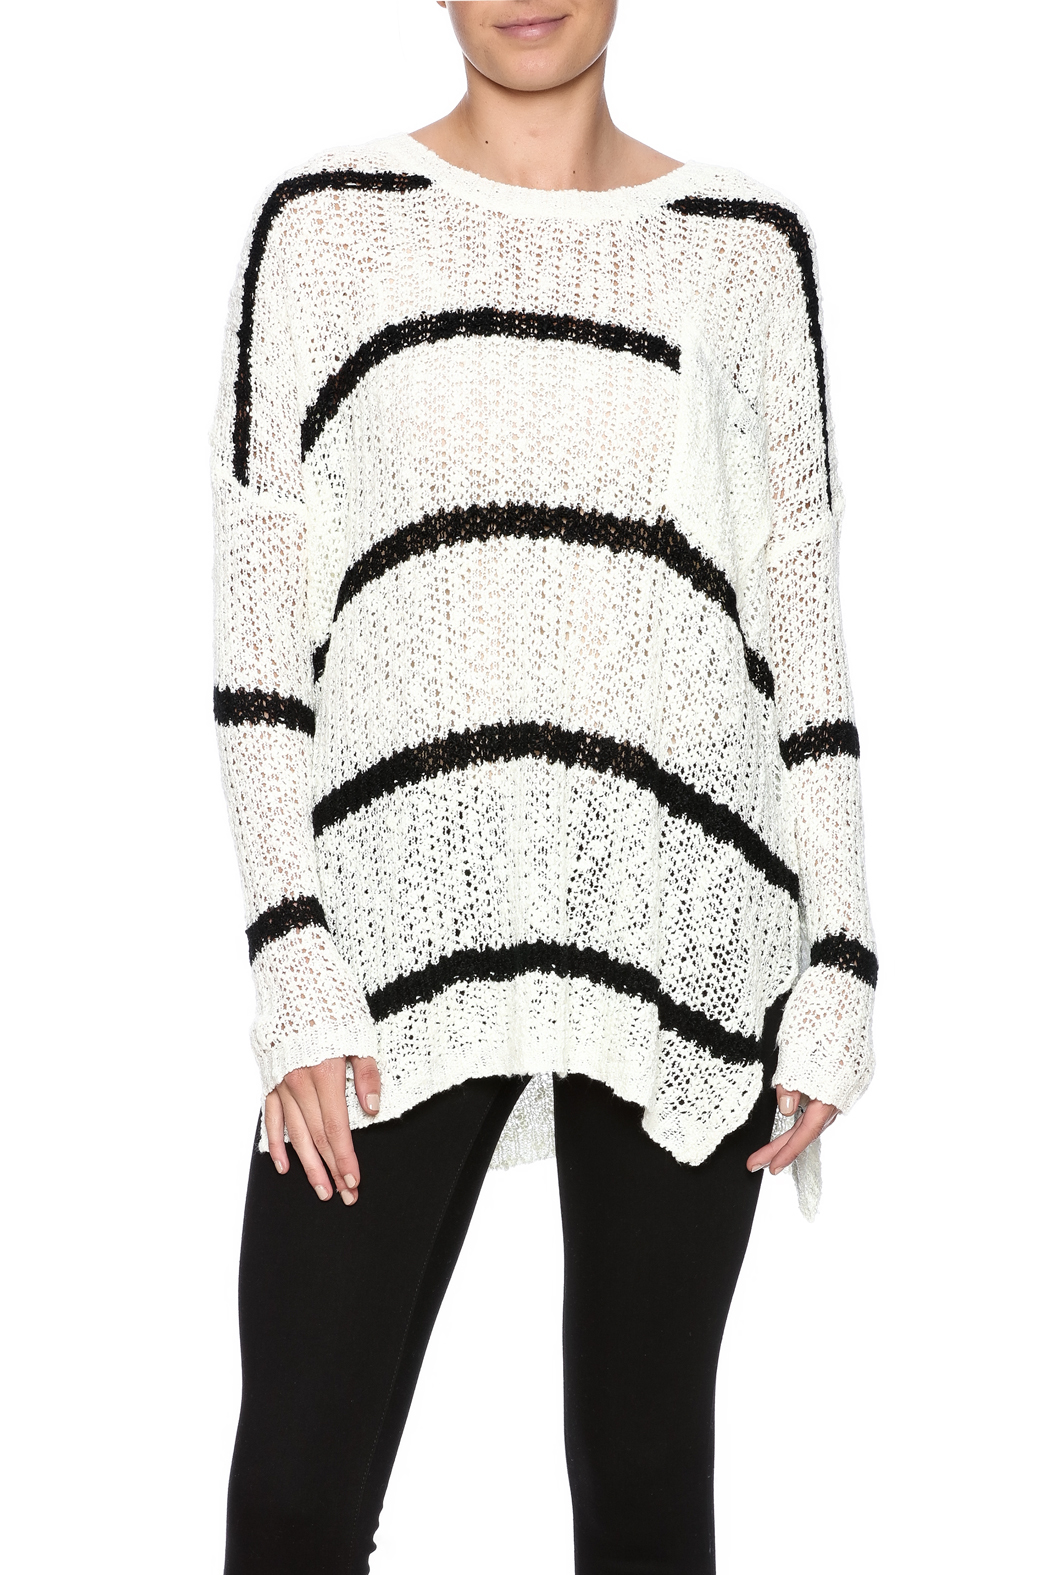 92eaa765c4db5 onetheland Loose Knit Stripe Sweater from New York by Dor L Dor ...